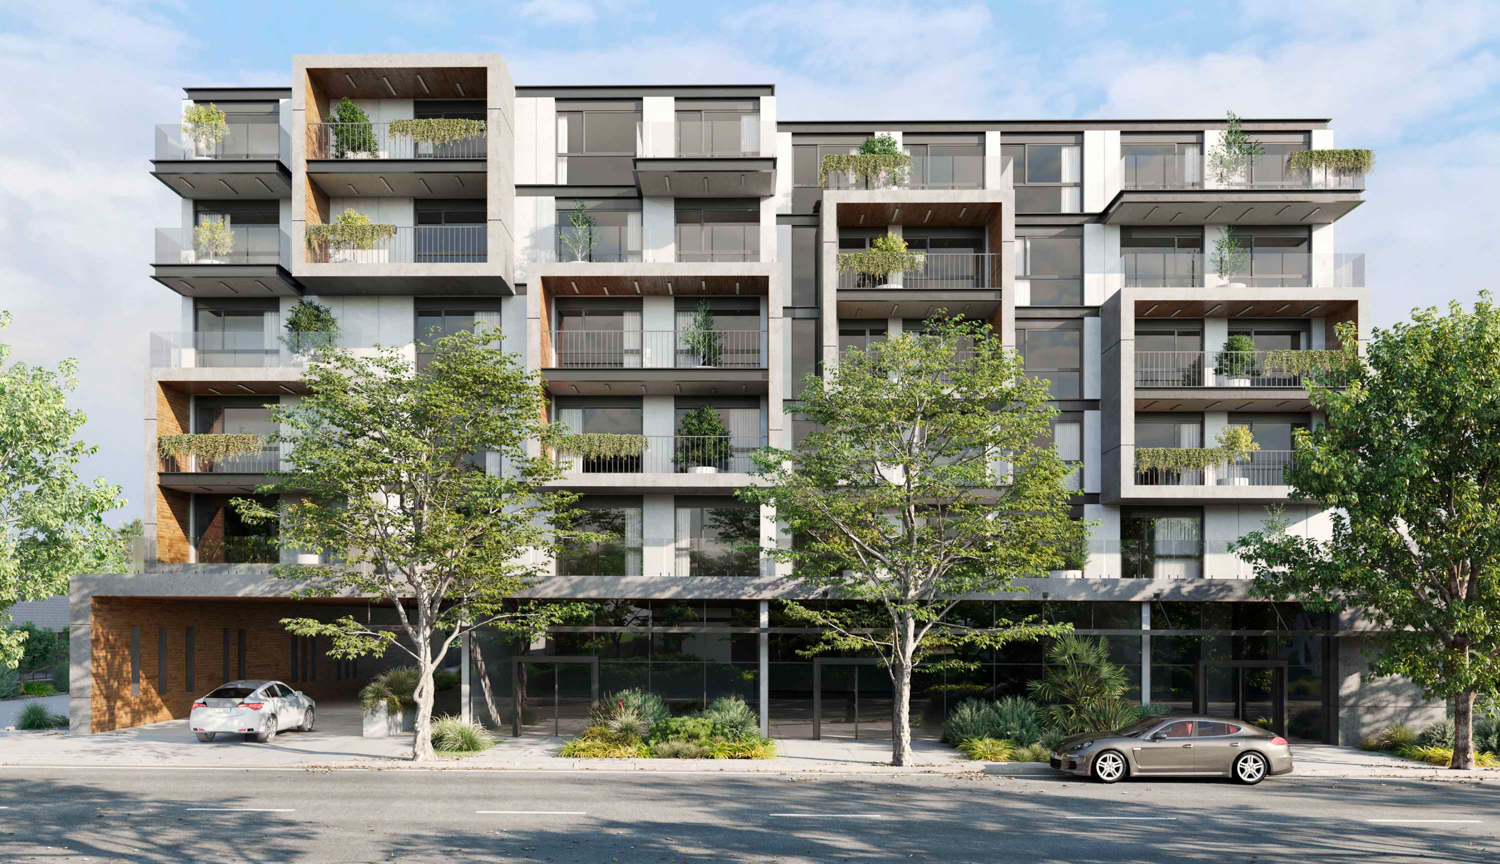 1073-1087 South Winchester Boulevard vertical elevation, rendering by Carpira Design Group